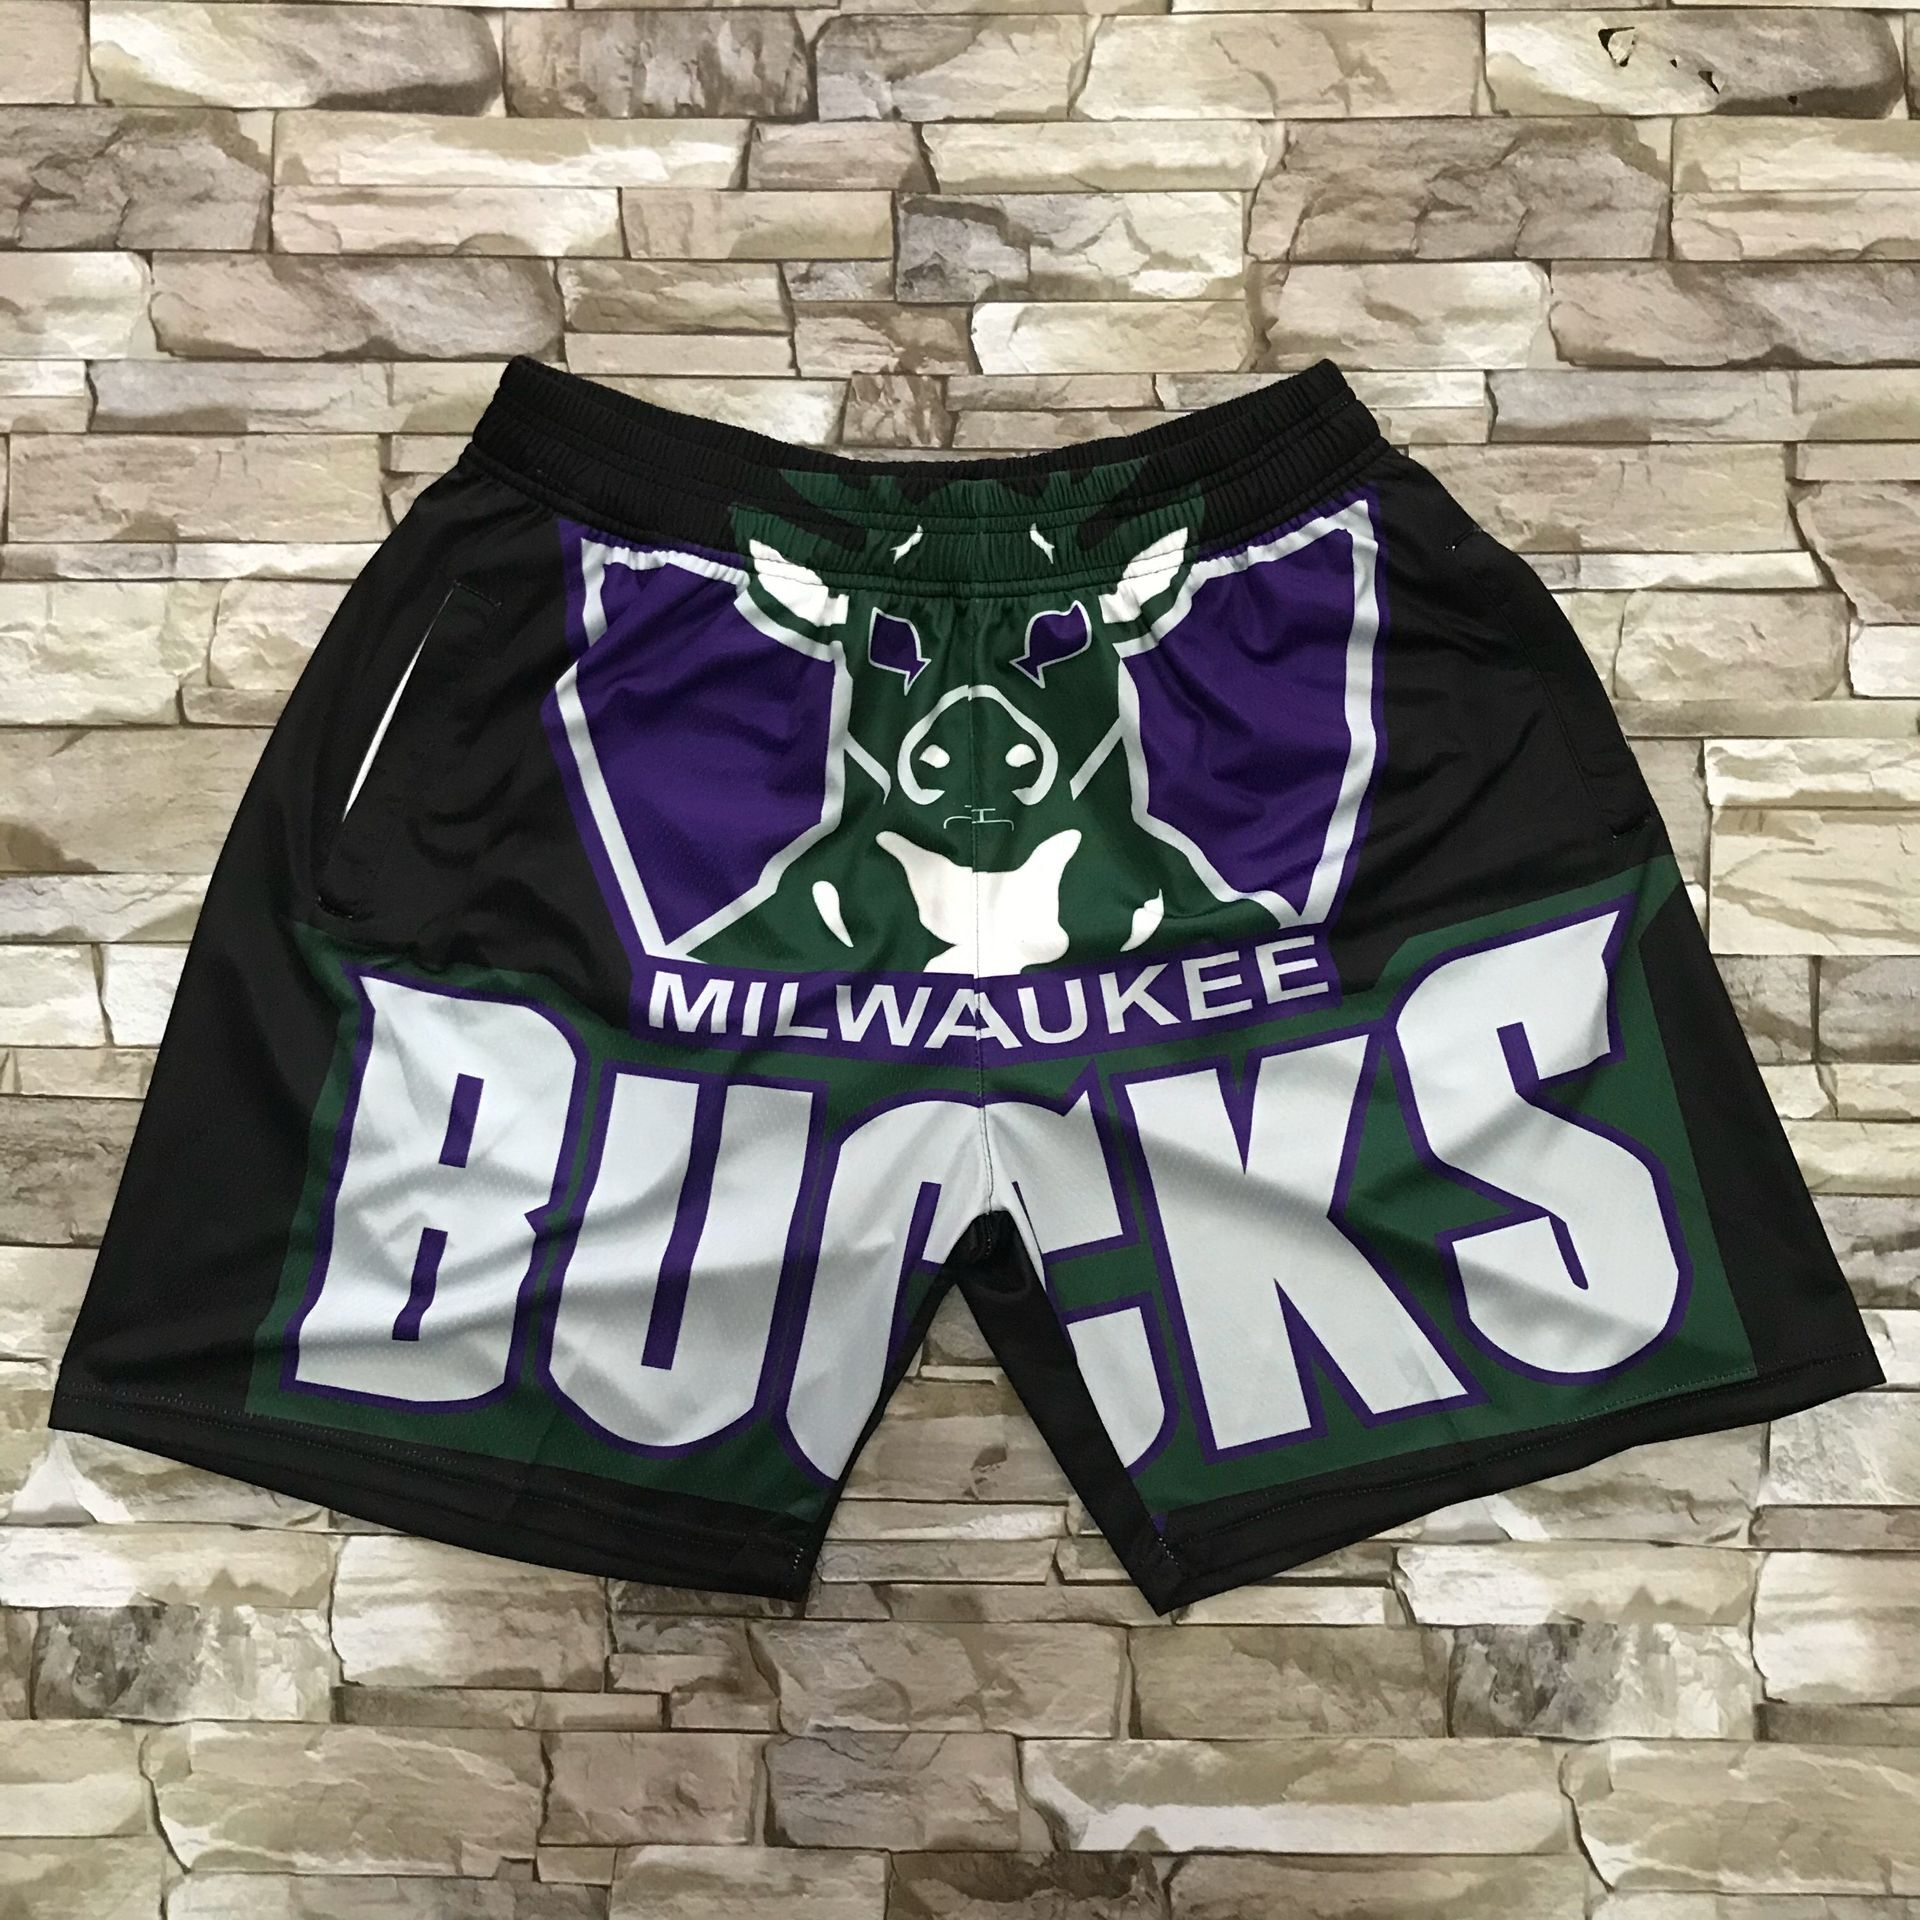 2020 Men NBA Milwaukee Bucks shorts